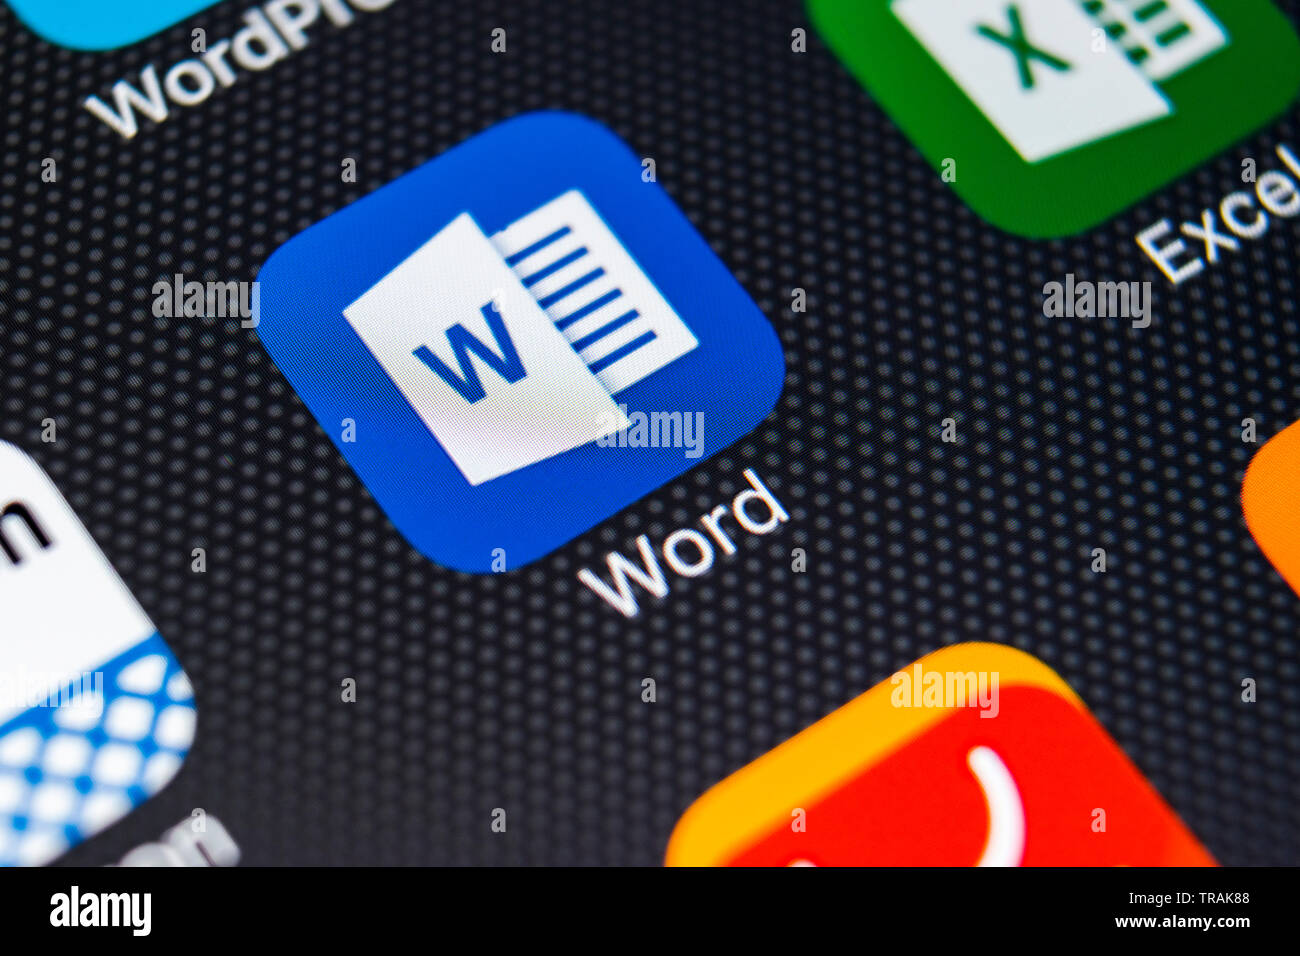 Microsoft Word Stock Photos & Microsoft Word Stock Images - Alamy